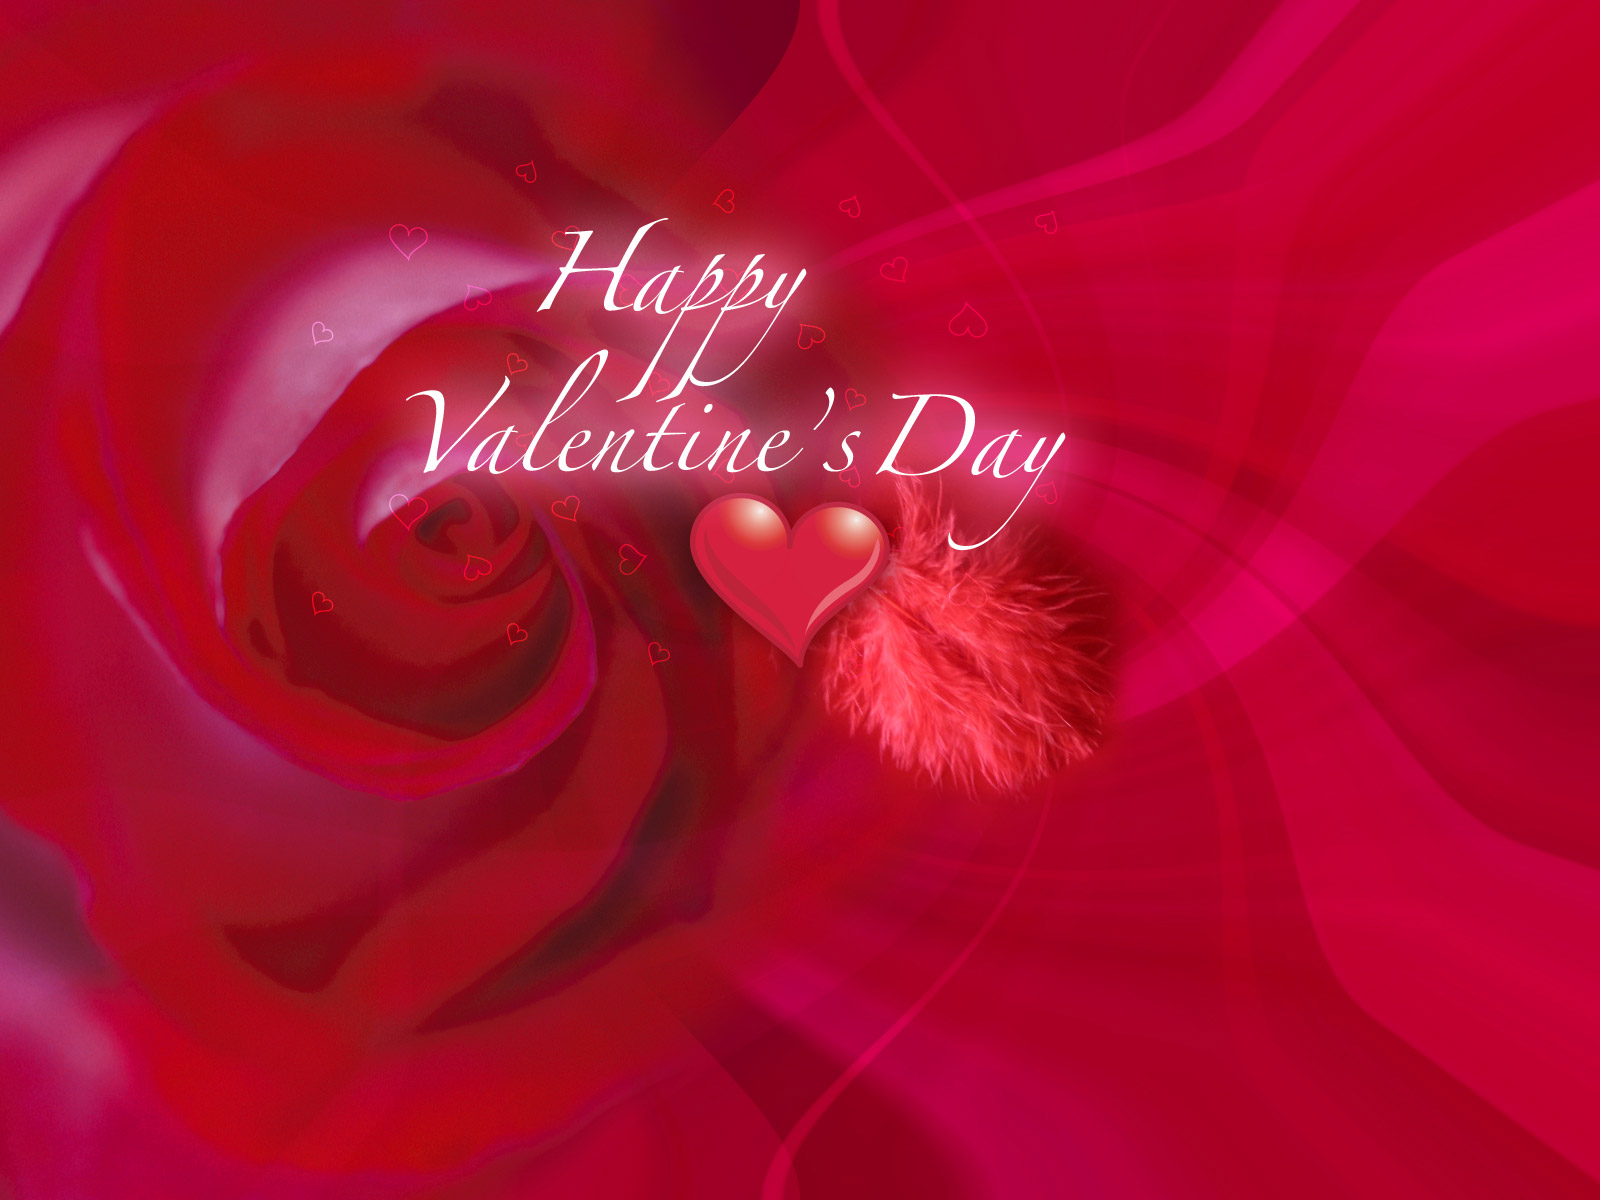 Funny Pictures valentines day wallpapers and screensavers 1600x1200